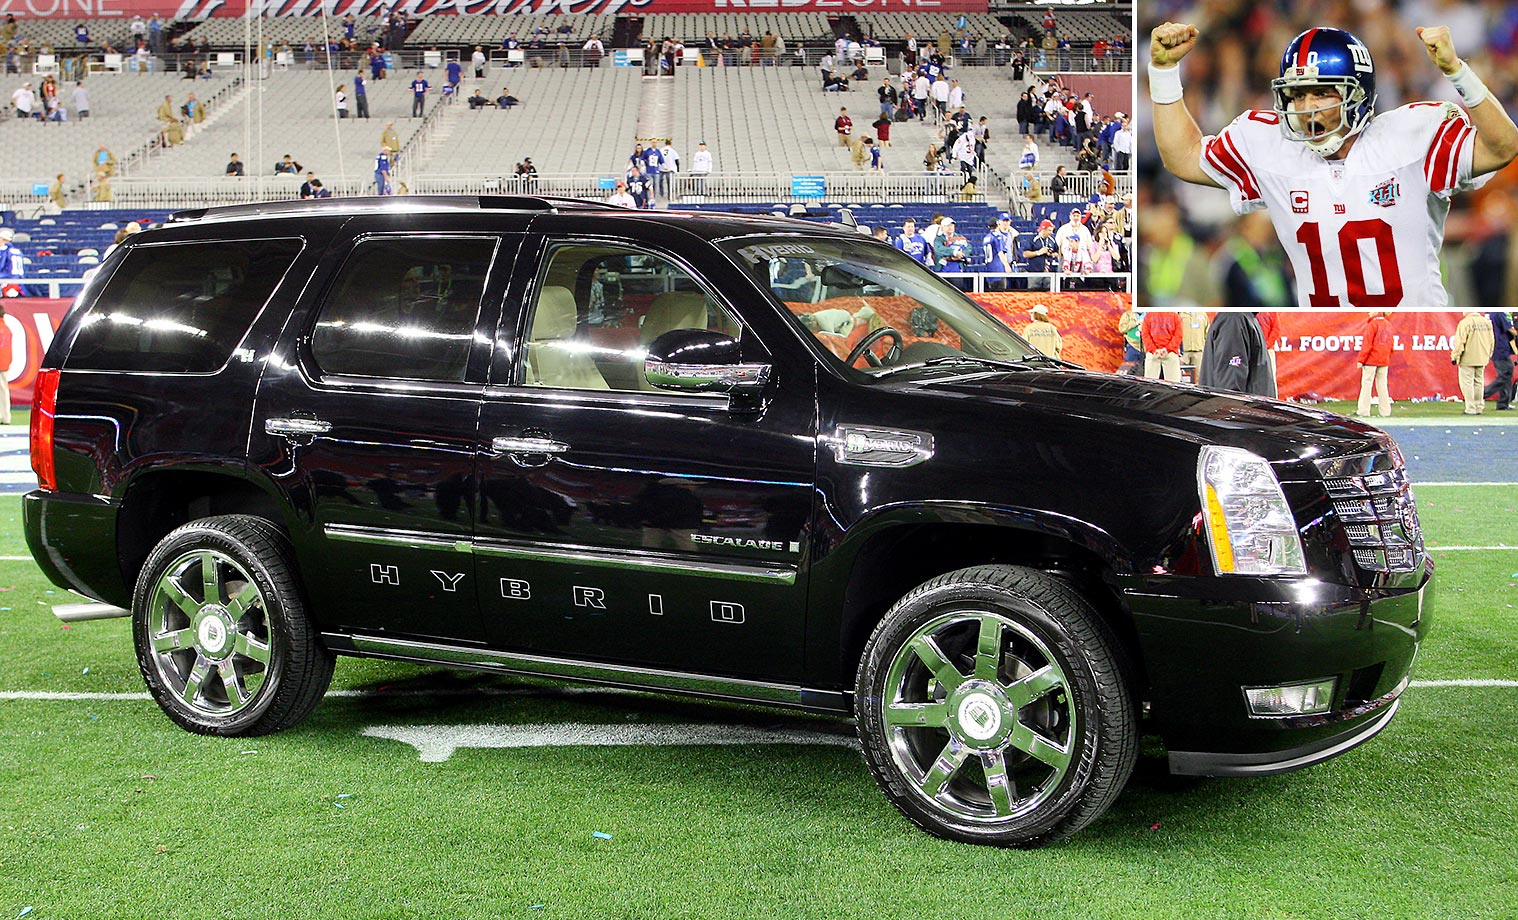 Eli Manning of the New York Giants won this Cadillac Escalade at Super Bowl XLII.